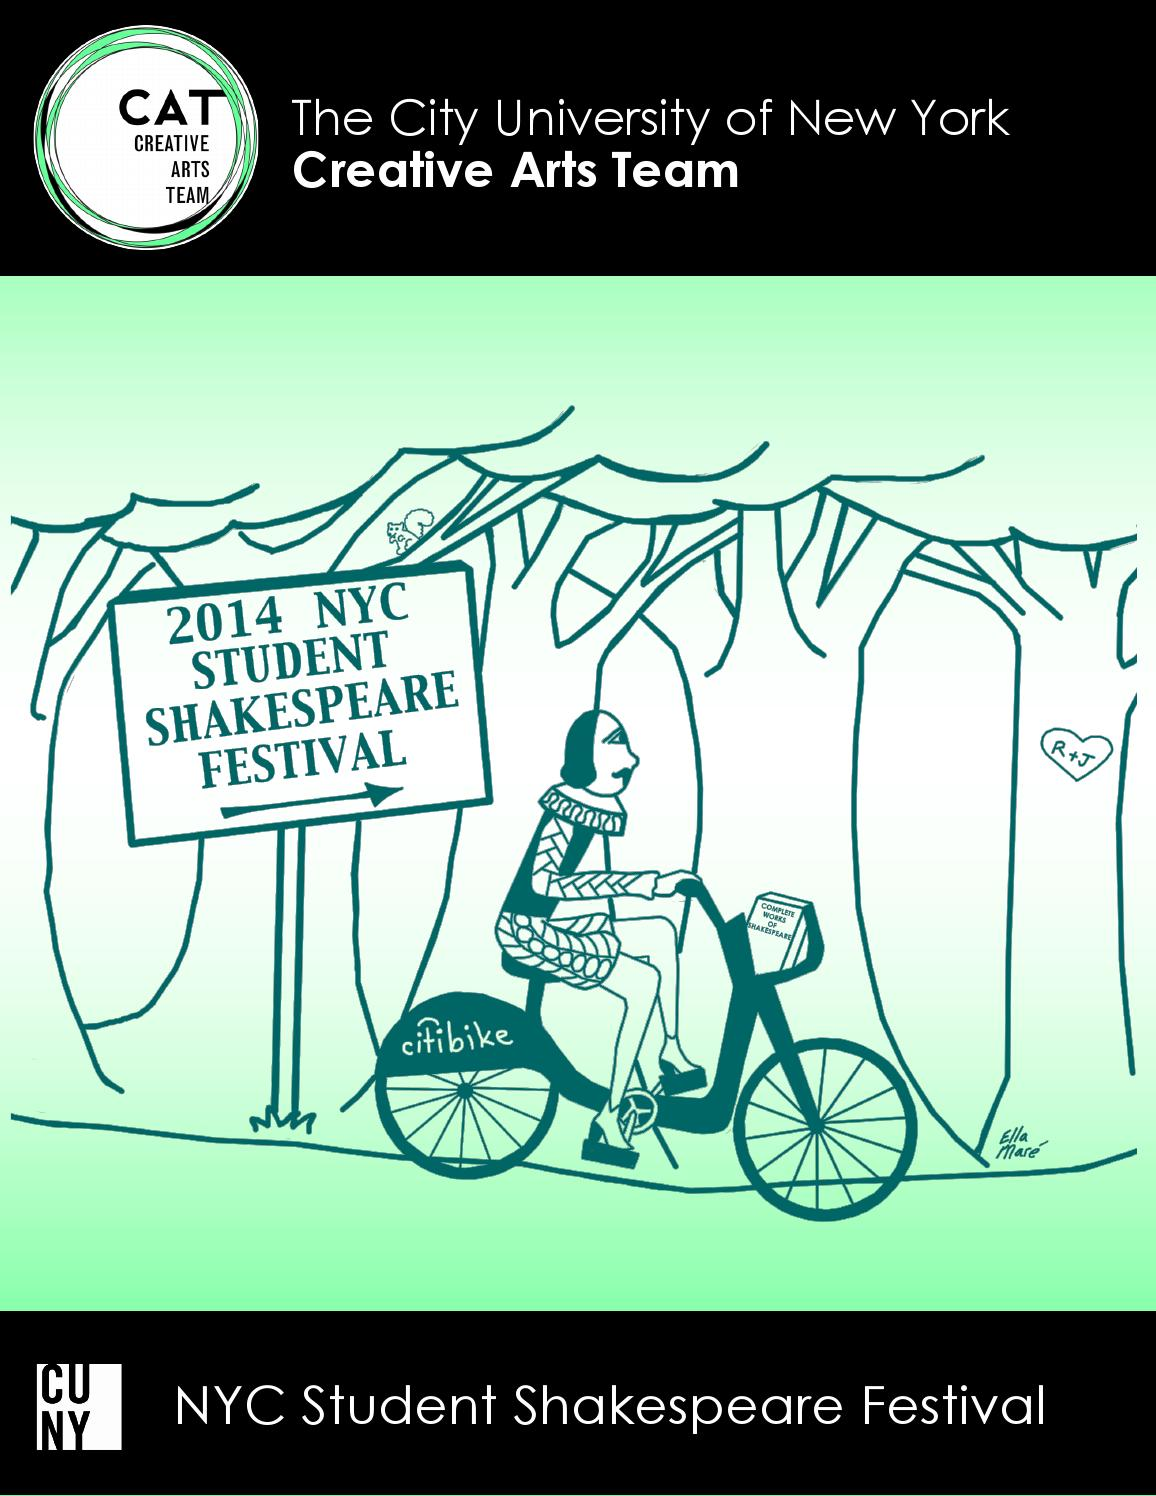 2014 NYC Student Shakespeare Festival By CUNY Creative